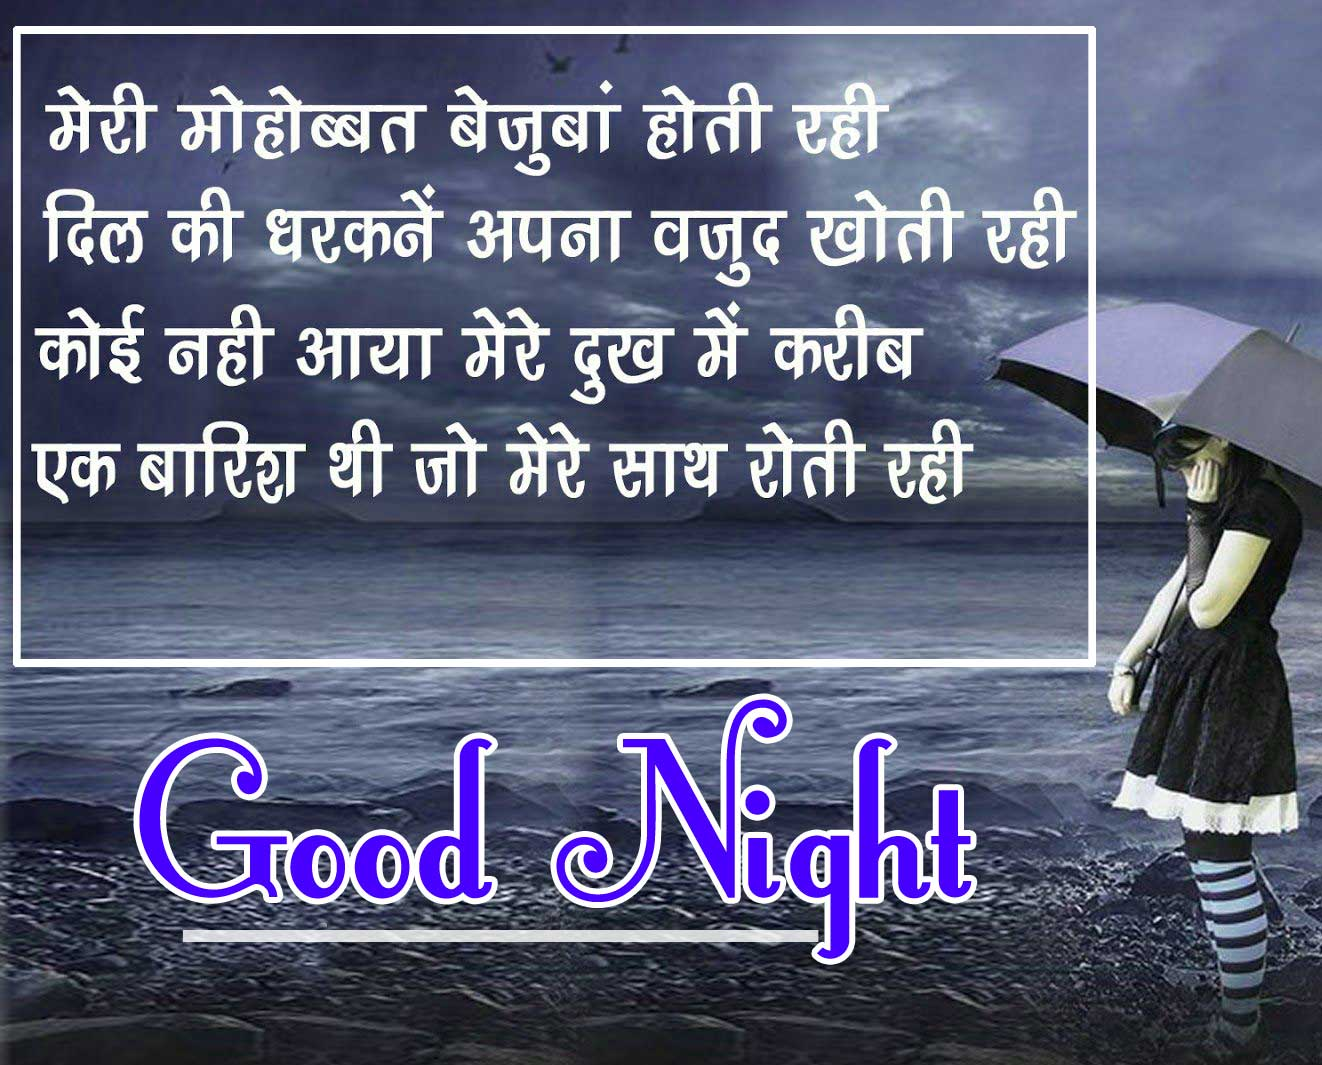 Good Night Images With Hindi Shayari 25